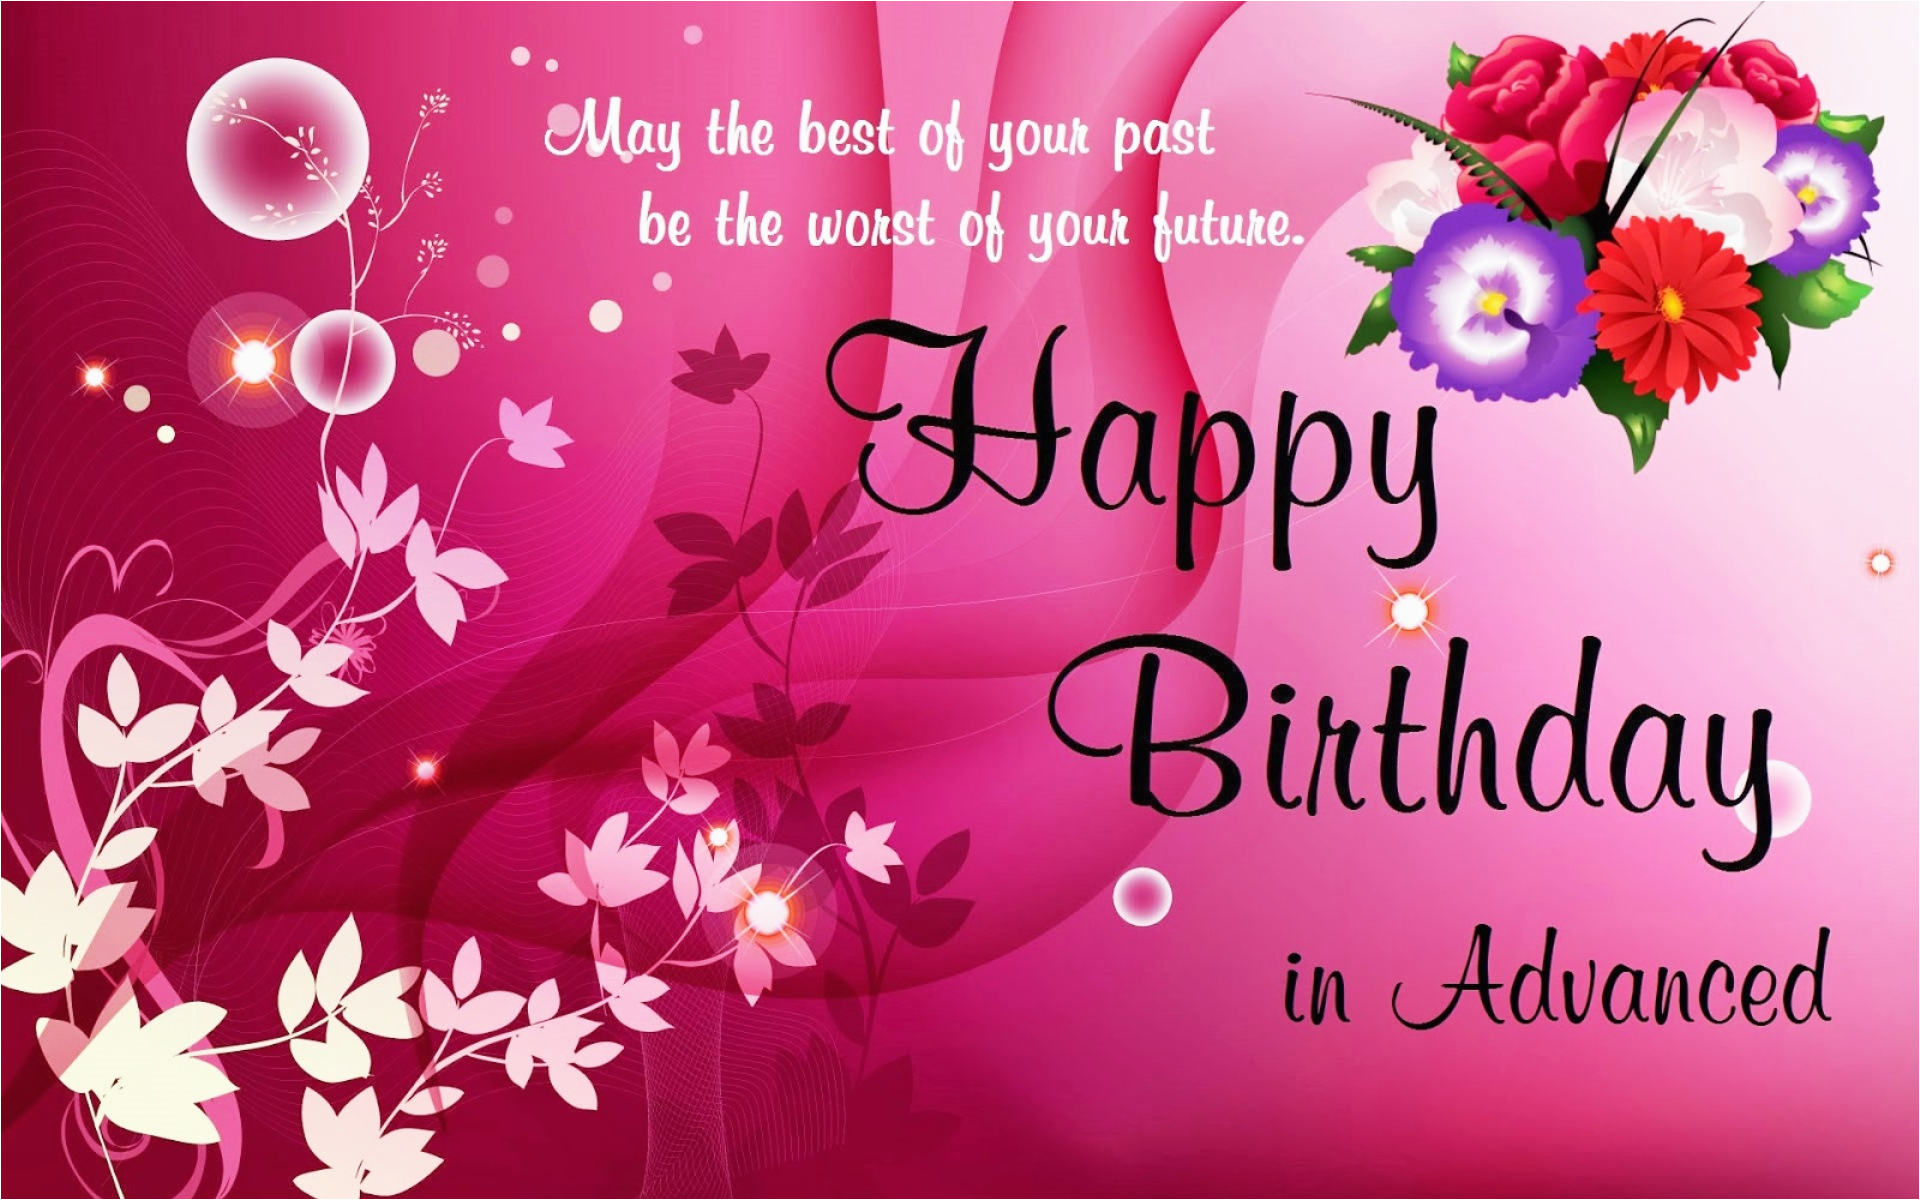 Free Happy Birthday Card Text Messages Meaningful Poems That Can Make Your Friends